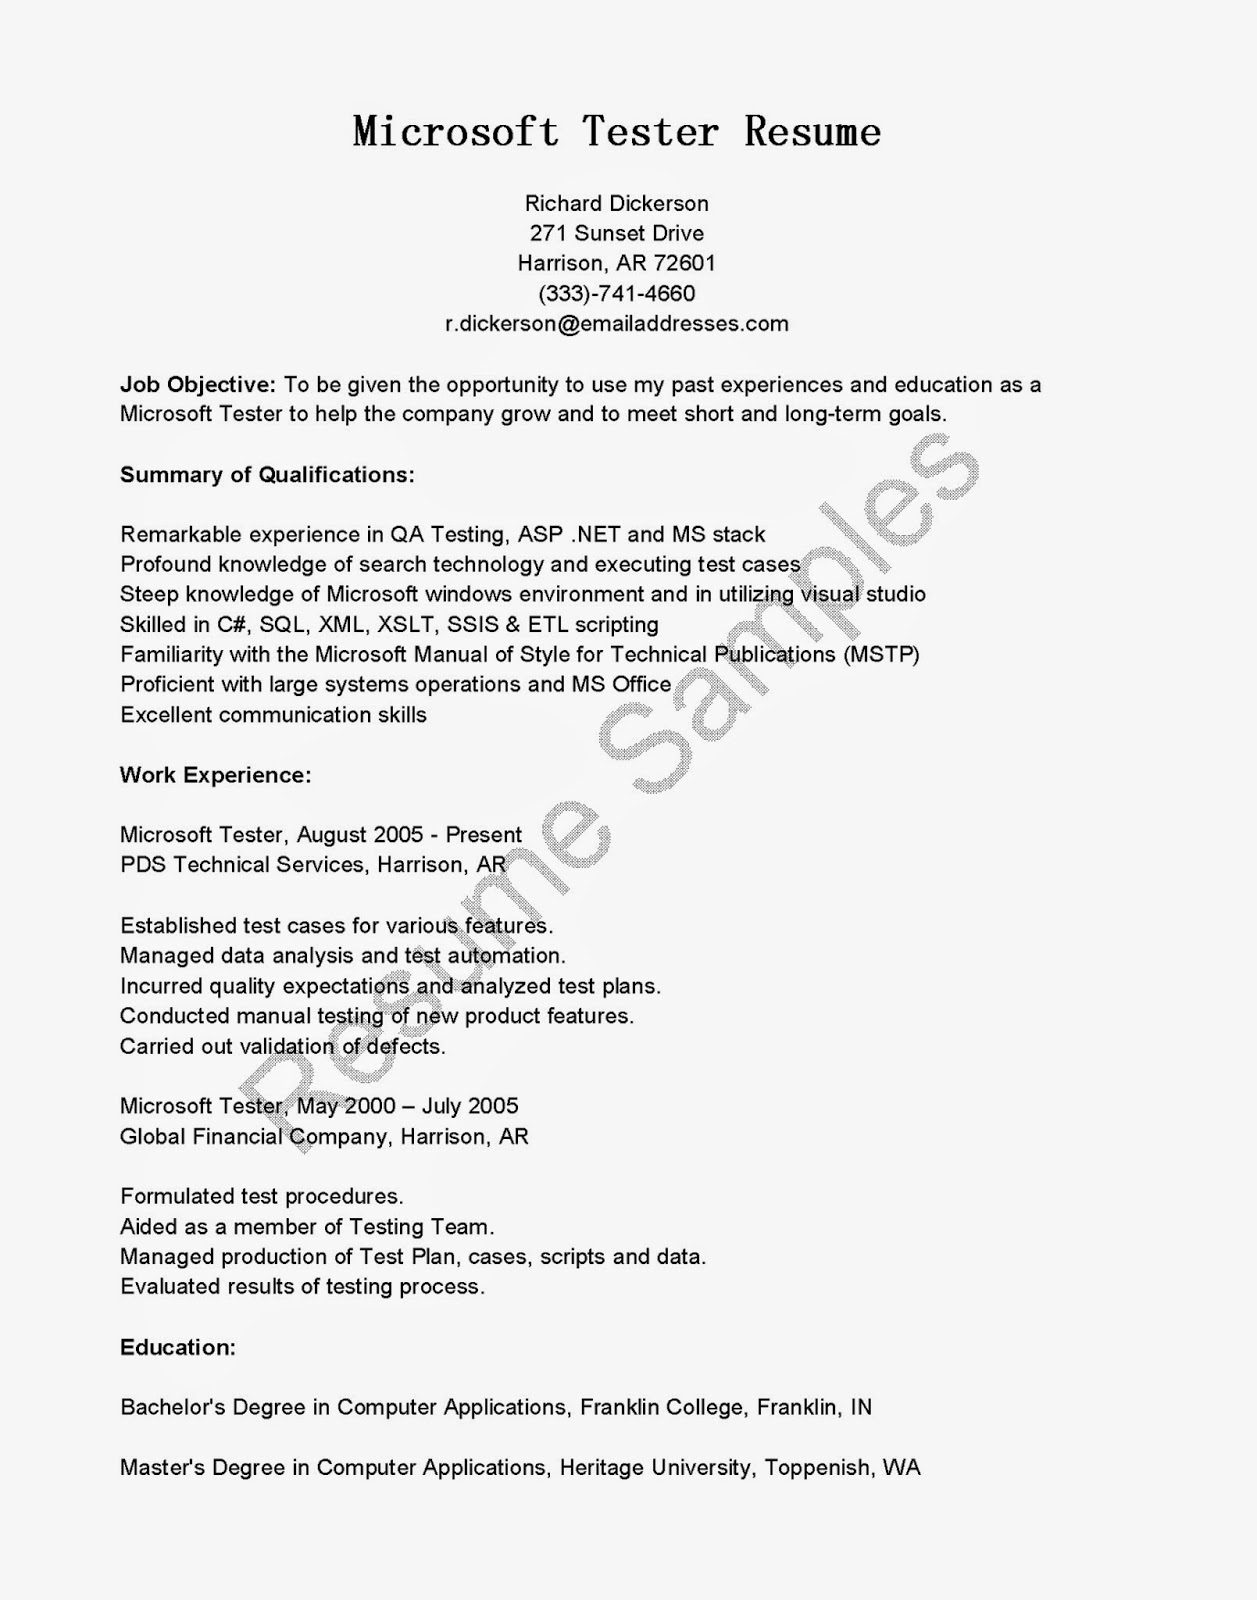 resume Resume For Testing tester resume ninja turtletechrepairs co resume